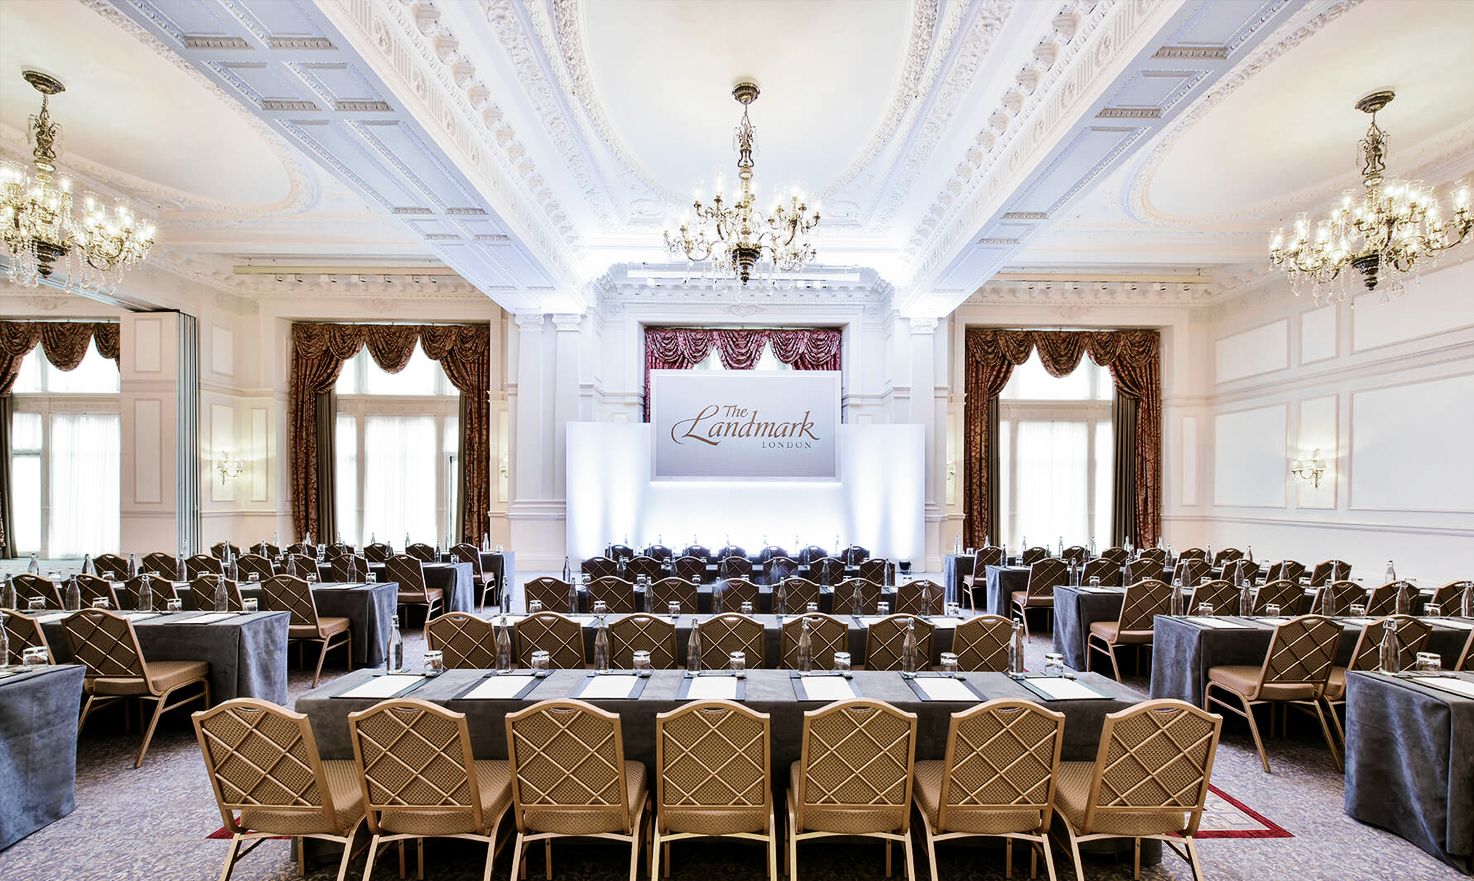 Right Angle Corporate Events Venues - Landmark London